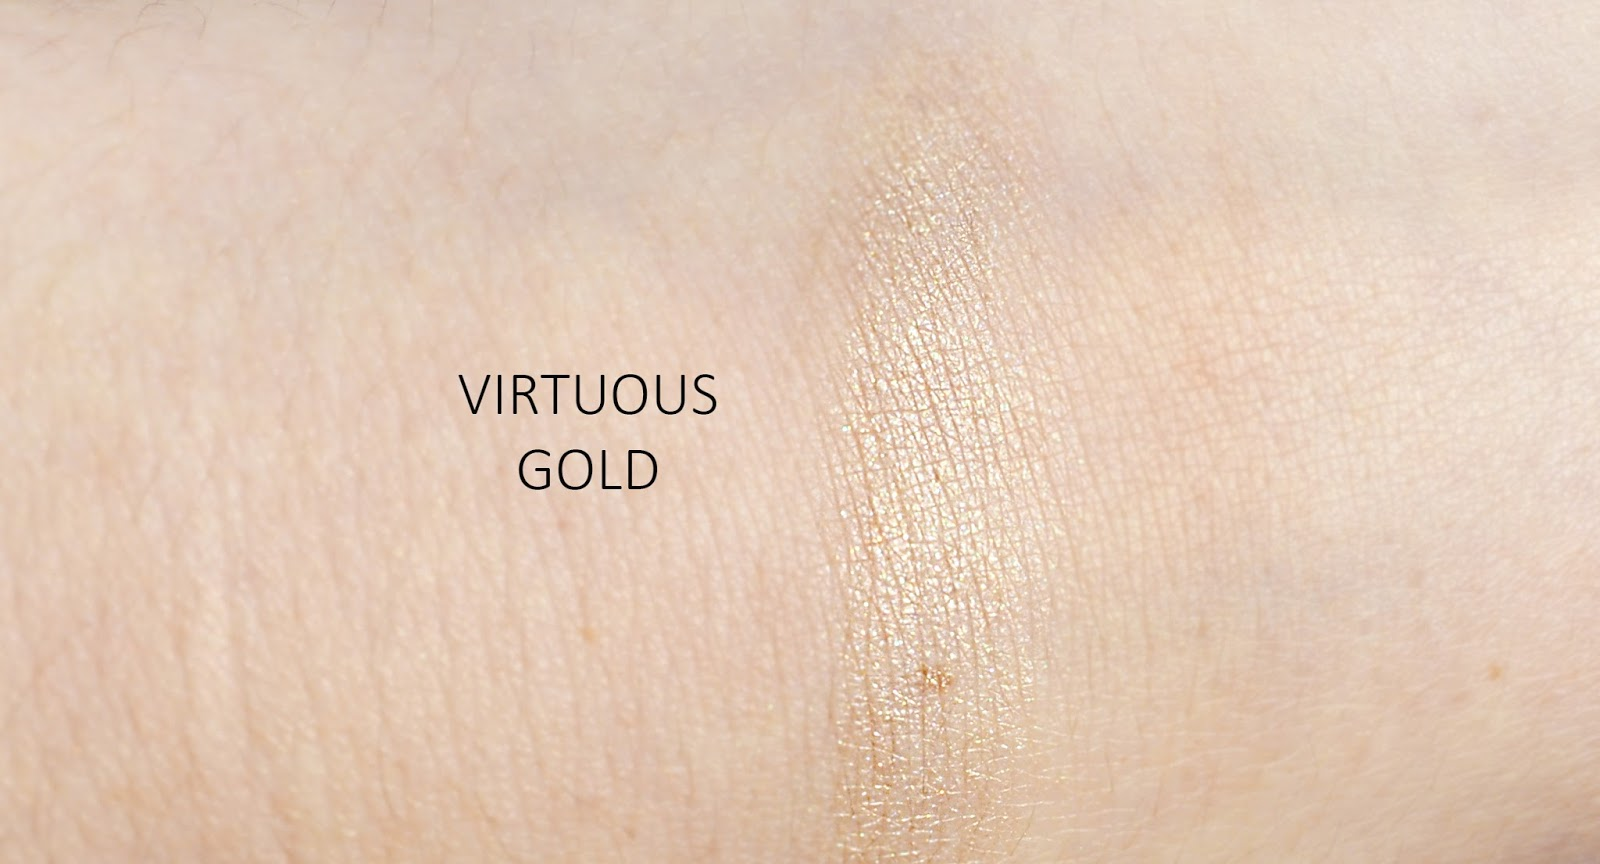 KIKO Glowing Pearl Cushion Highlighter Virtuous Gold Swatch